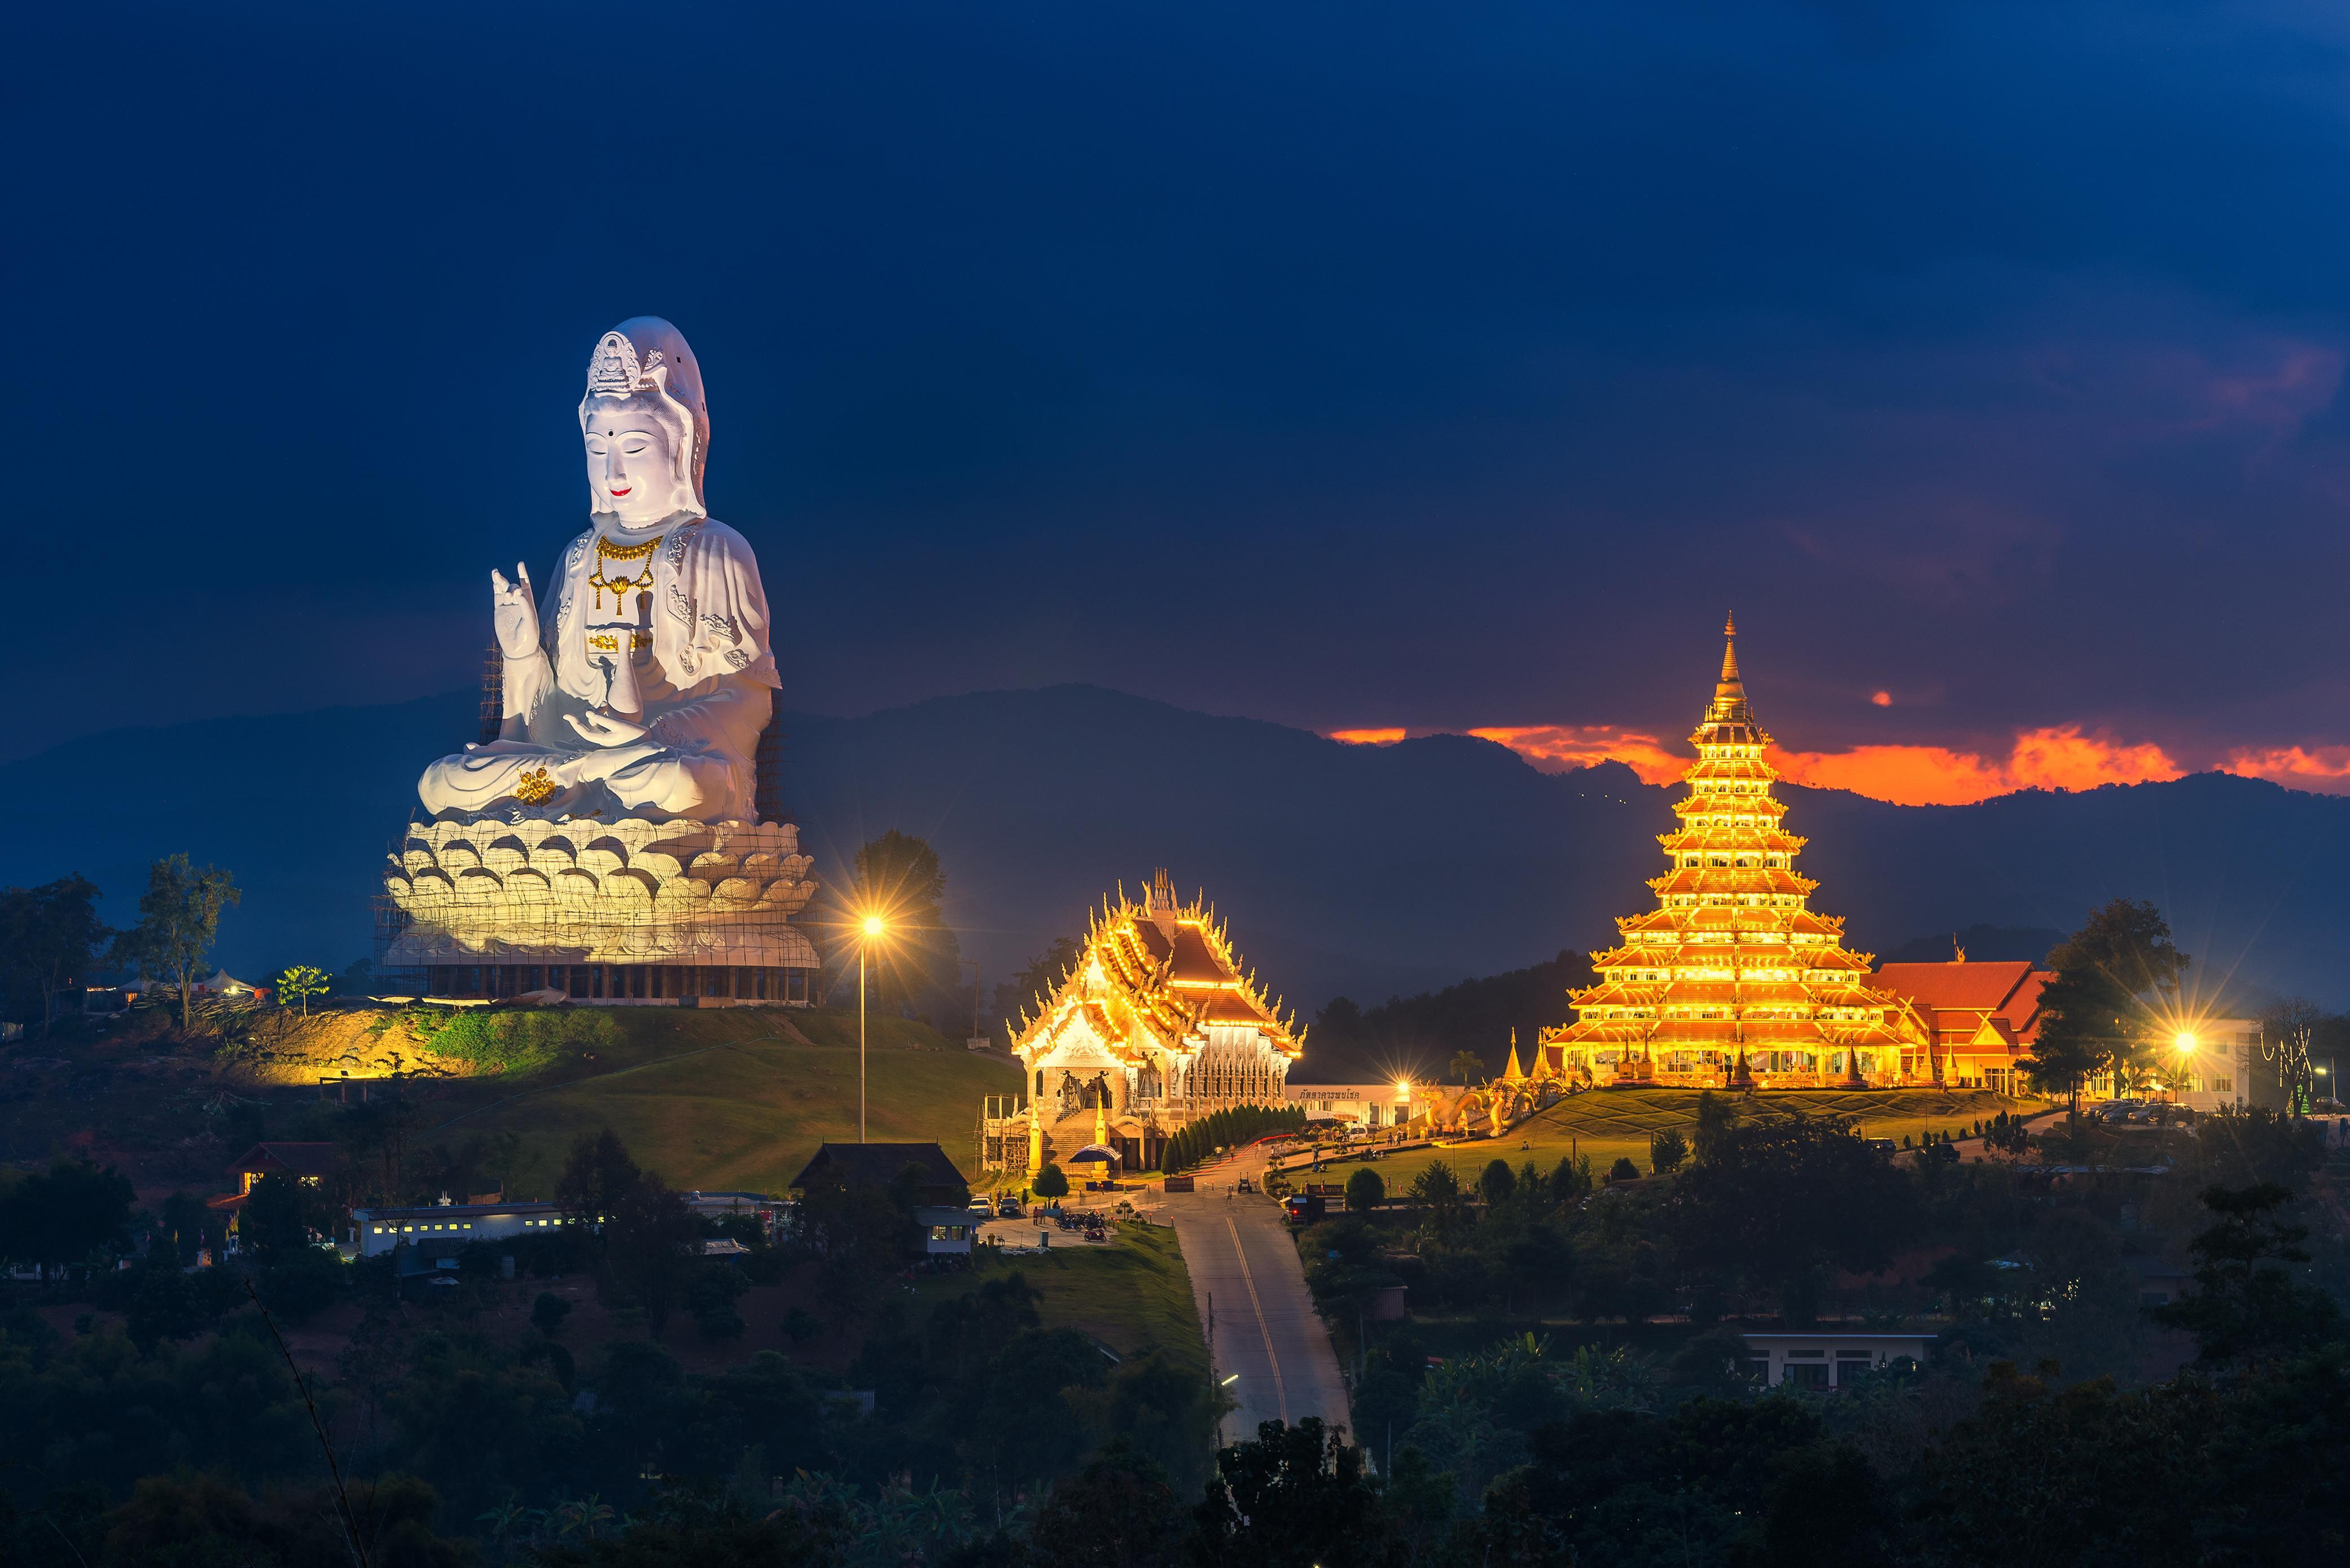 How to Spend 1 Day in Chiang Rai